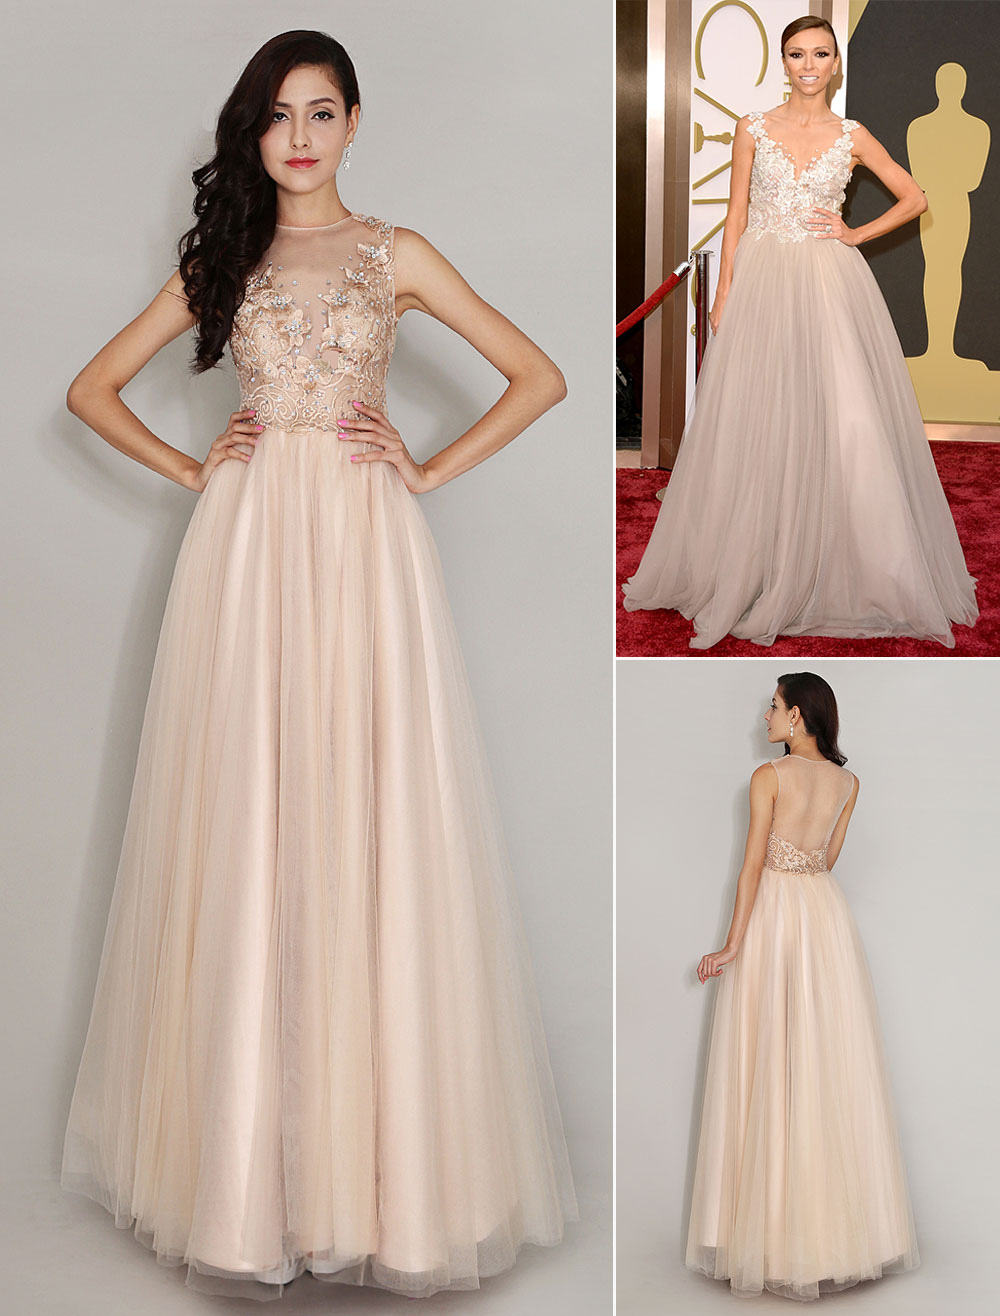 Floor-Length Champagne Tulle Applique Jewel Neck Evening Dress Inspired by Giuliana Rancic at Oscar